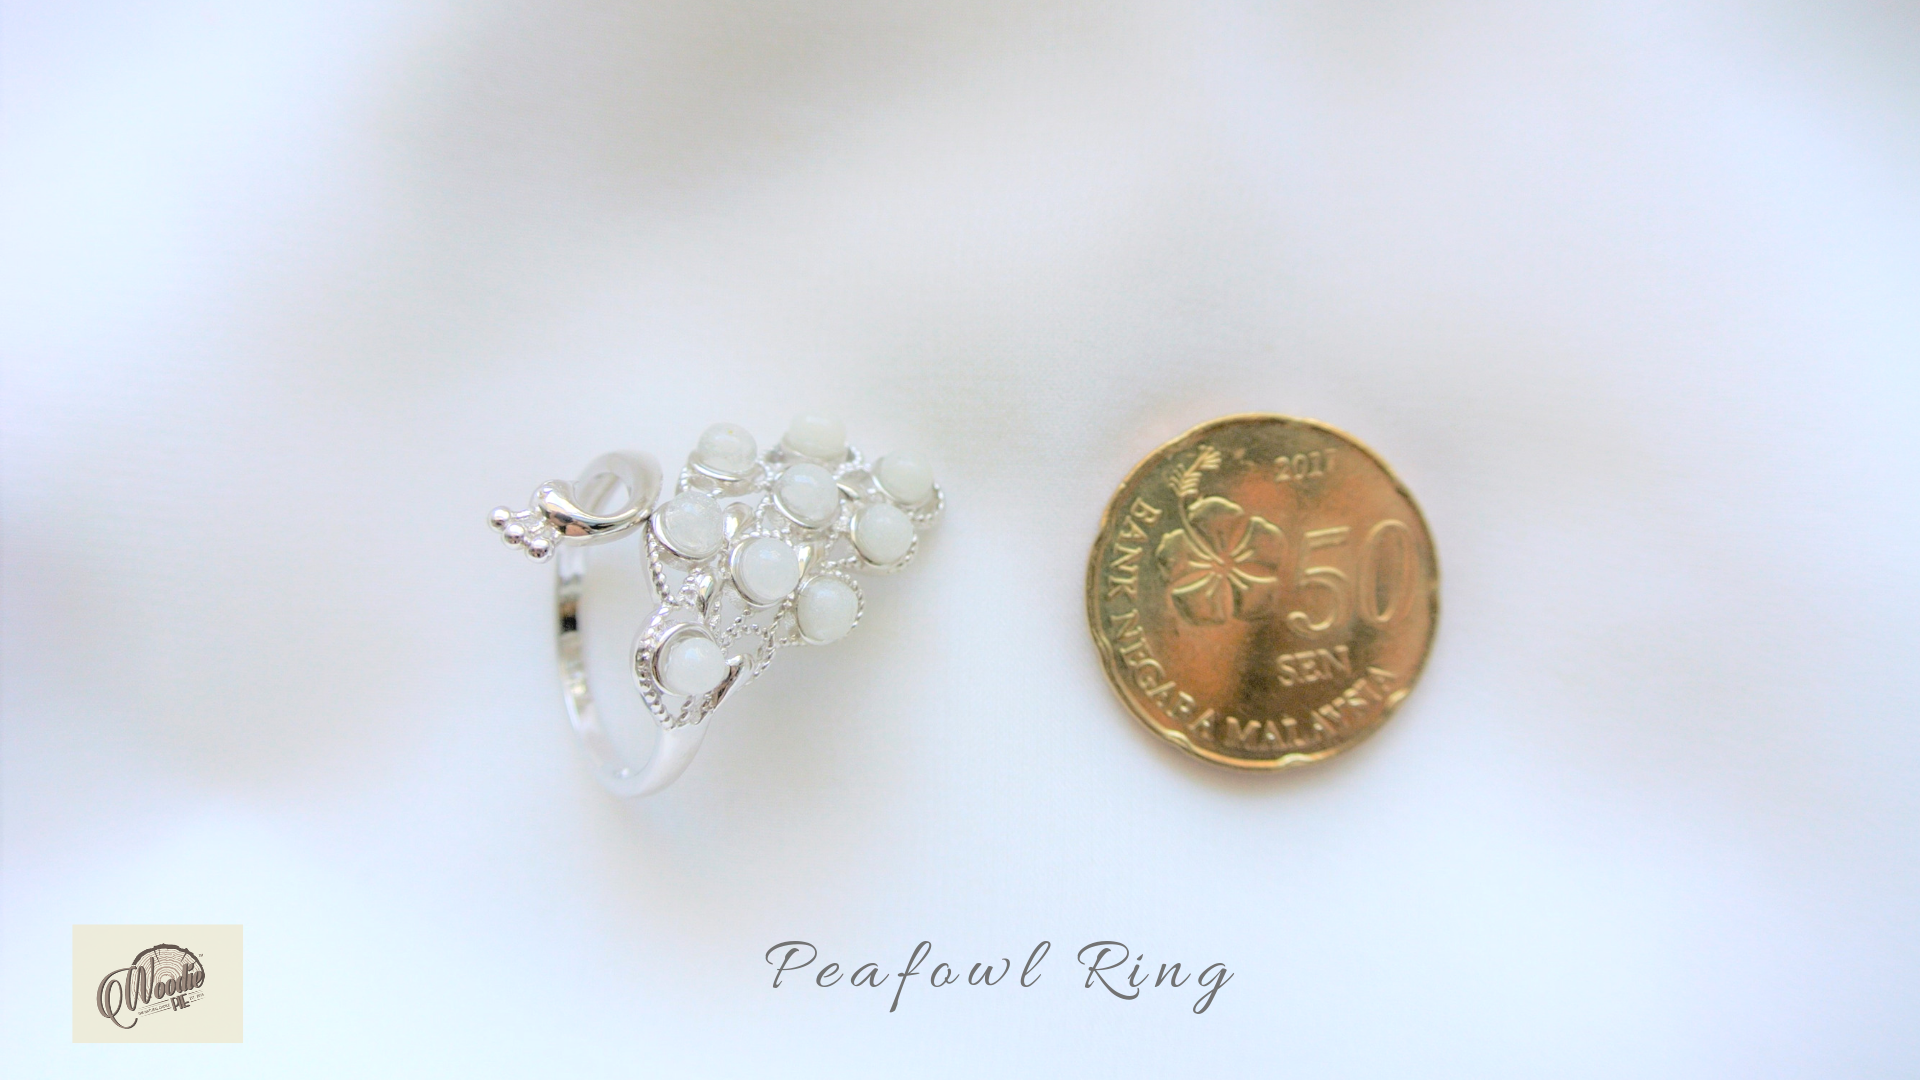 Peafowl Ring 4.png